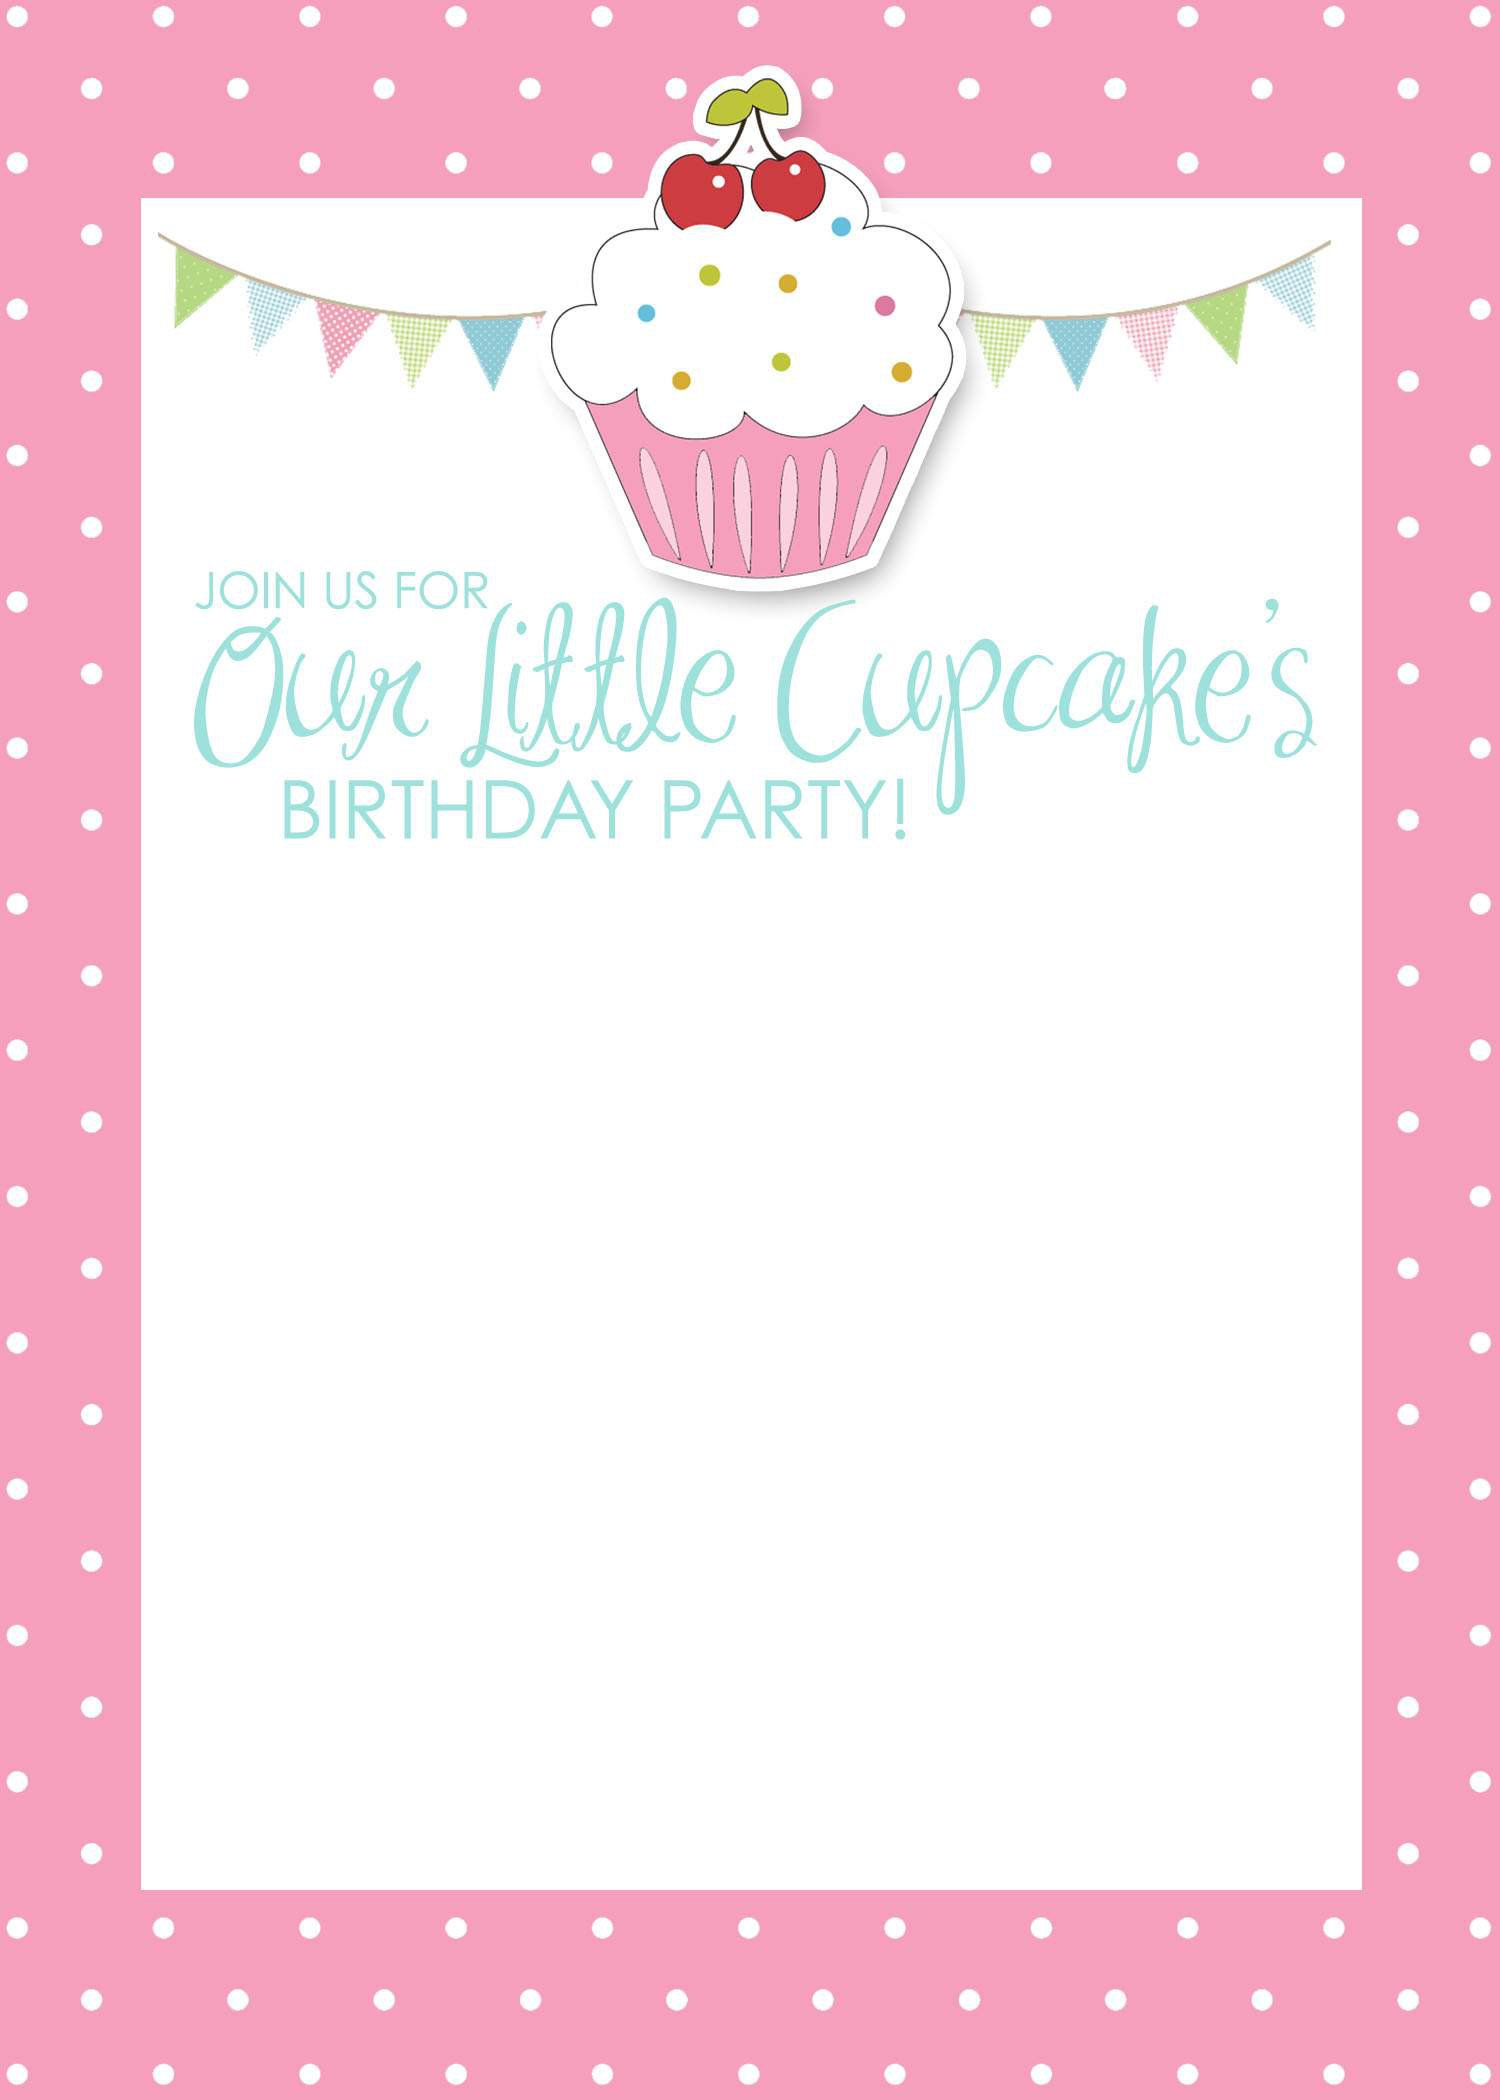 free birthday invitation border templates ; 24f557e96bcd868331476ab352a936c0